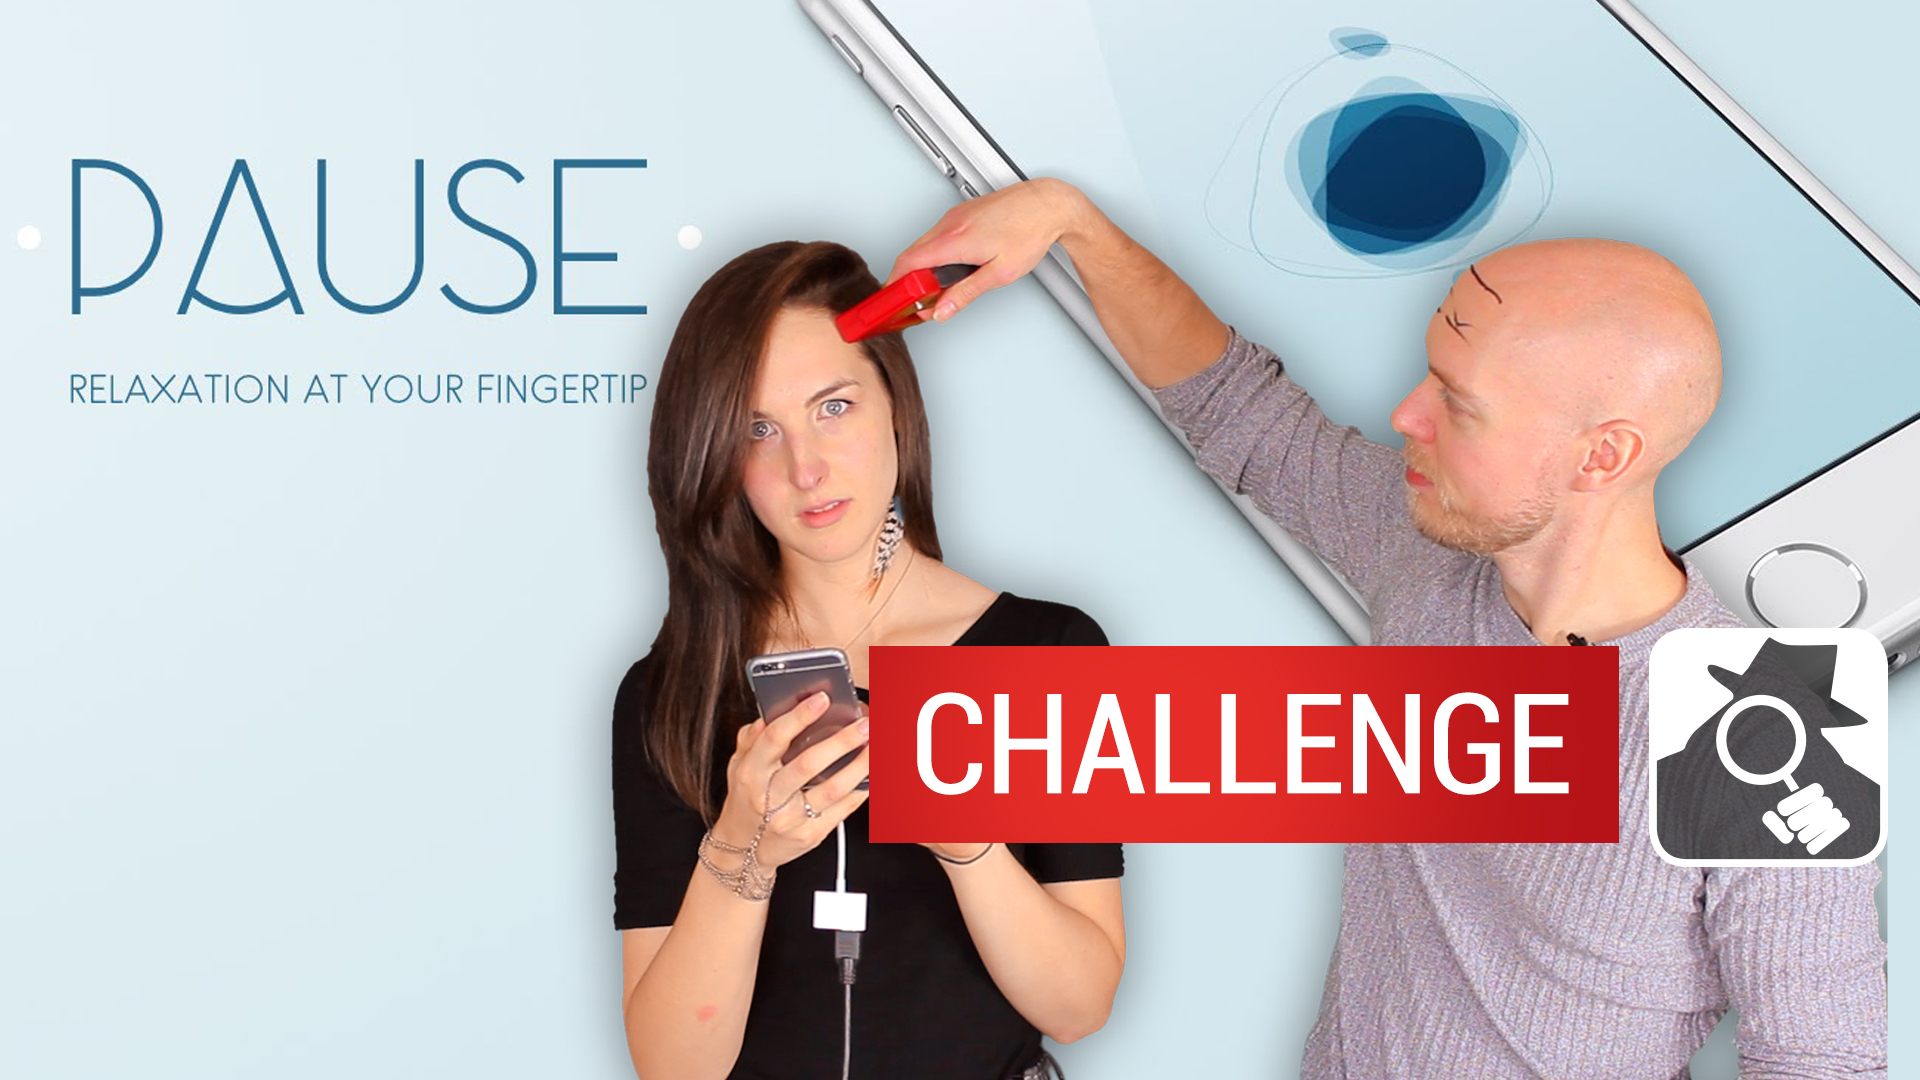 Does ustwo's relaxation app Pause really work? Find out in the first AppSpy Challenge video